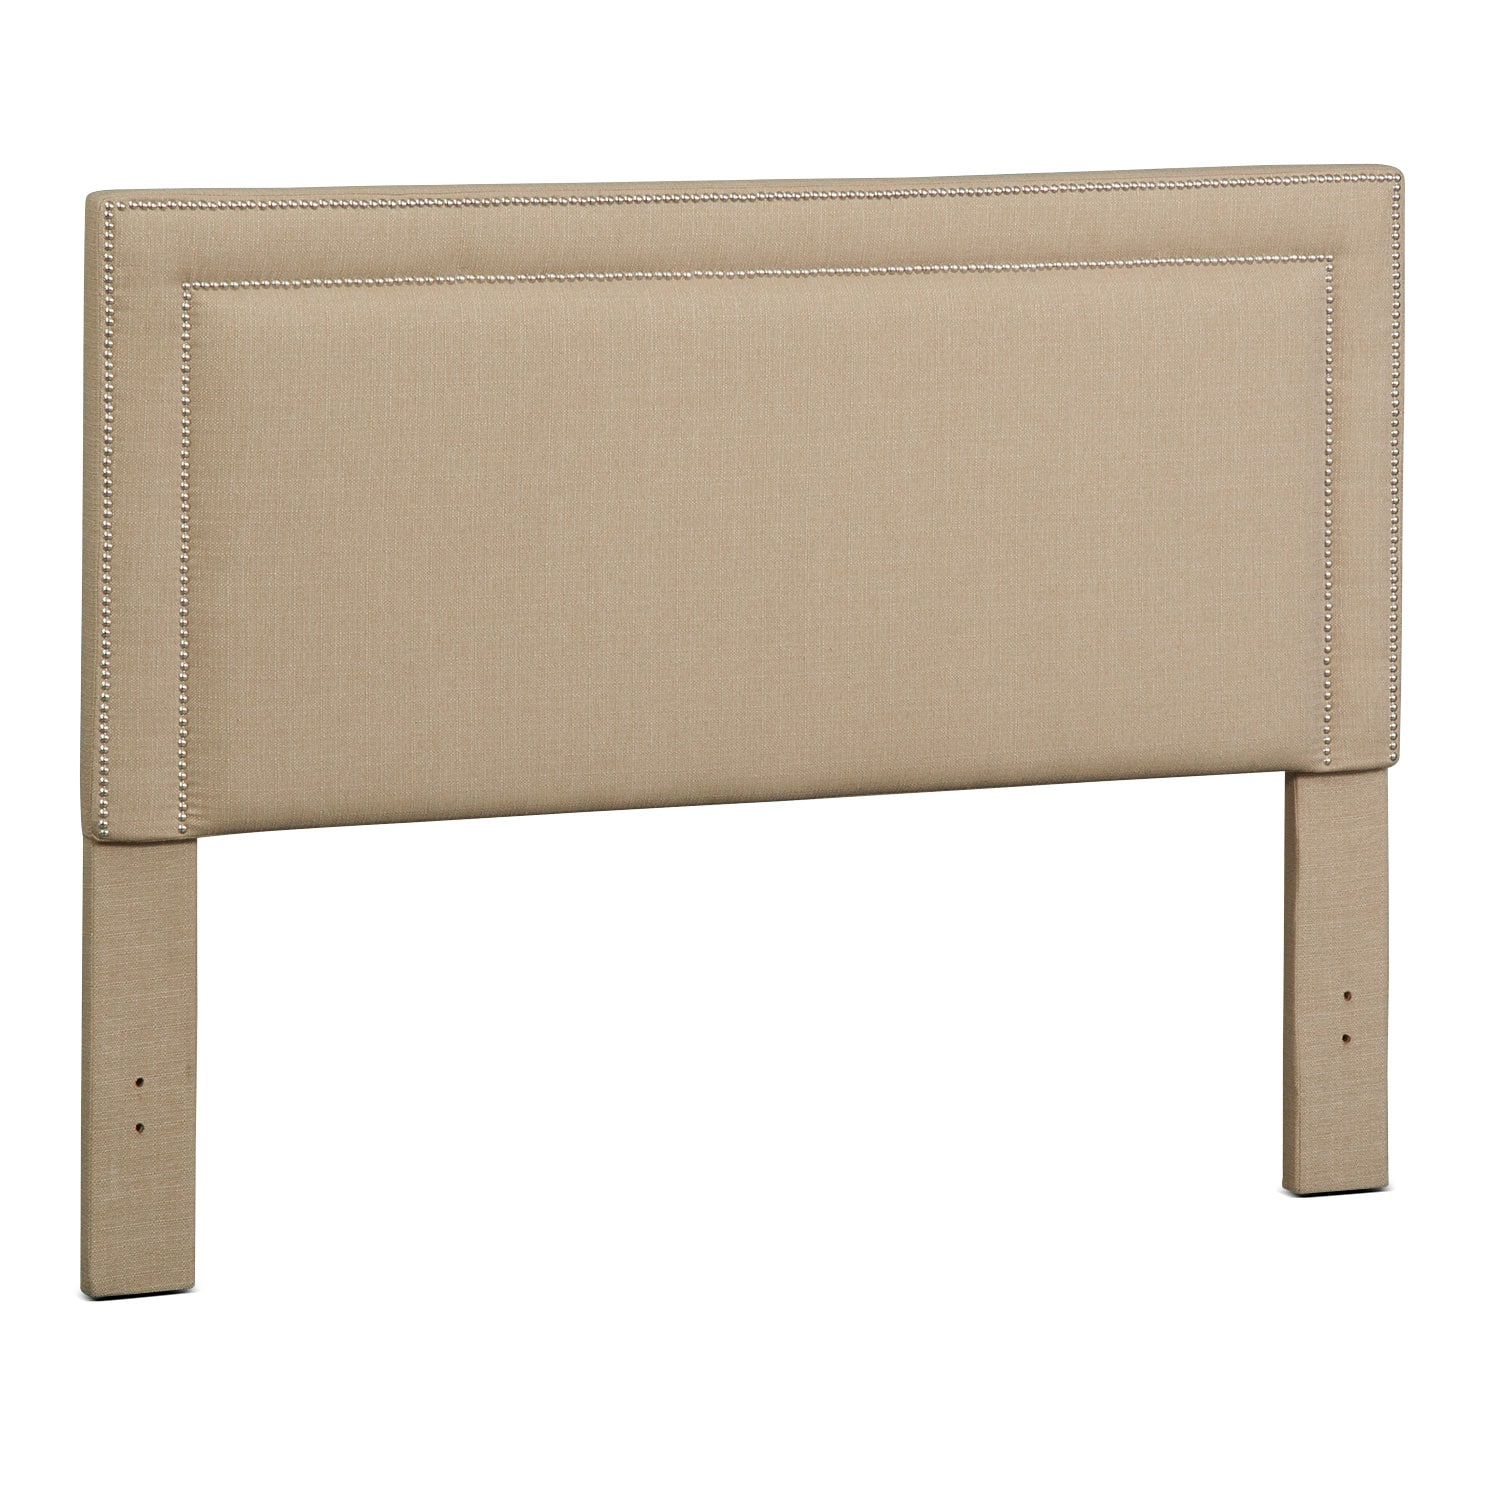 Bedroom Furniture - Natalie Queen Upholstered Headboard - Tan